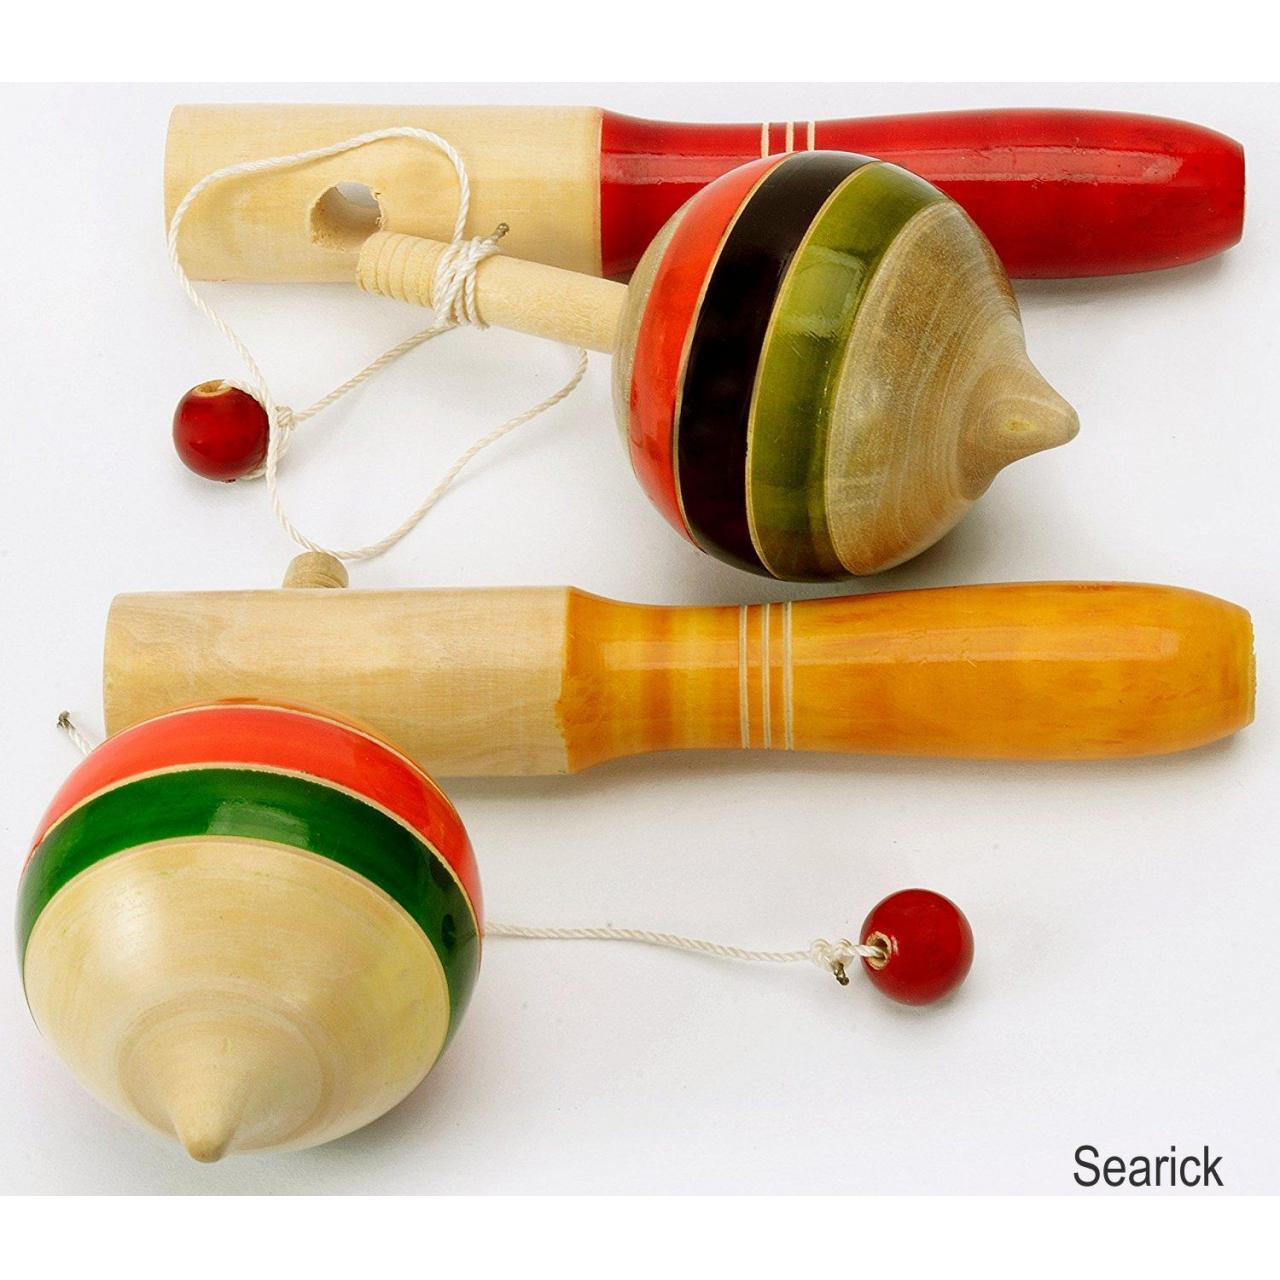 Buy cheap Pair 2Pcs Handmade Lacquer Painted Wooden Spinning Tops Toys Vintage India Craft from wholesalers